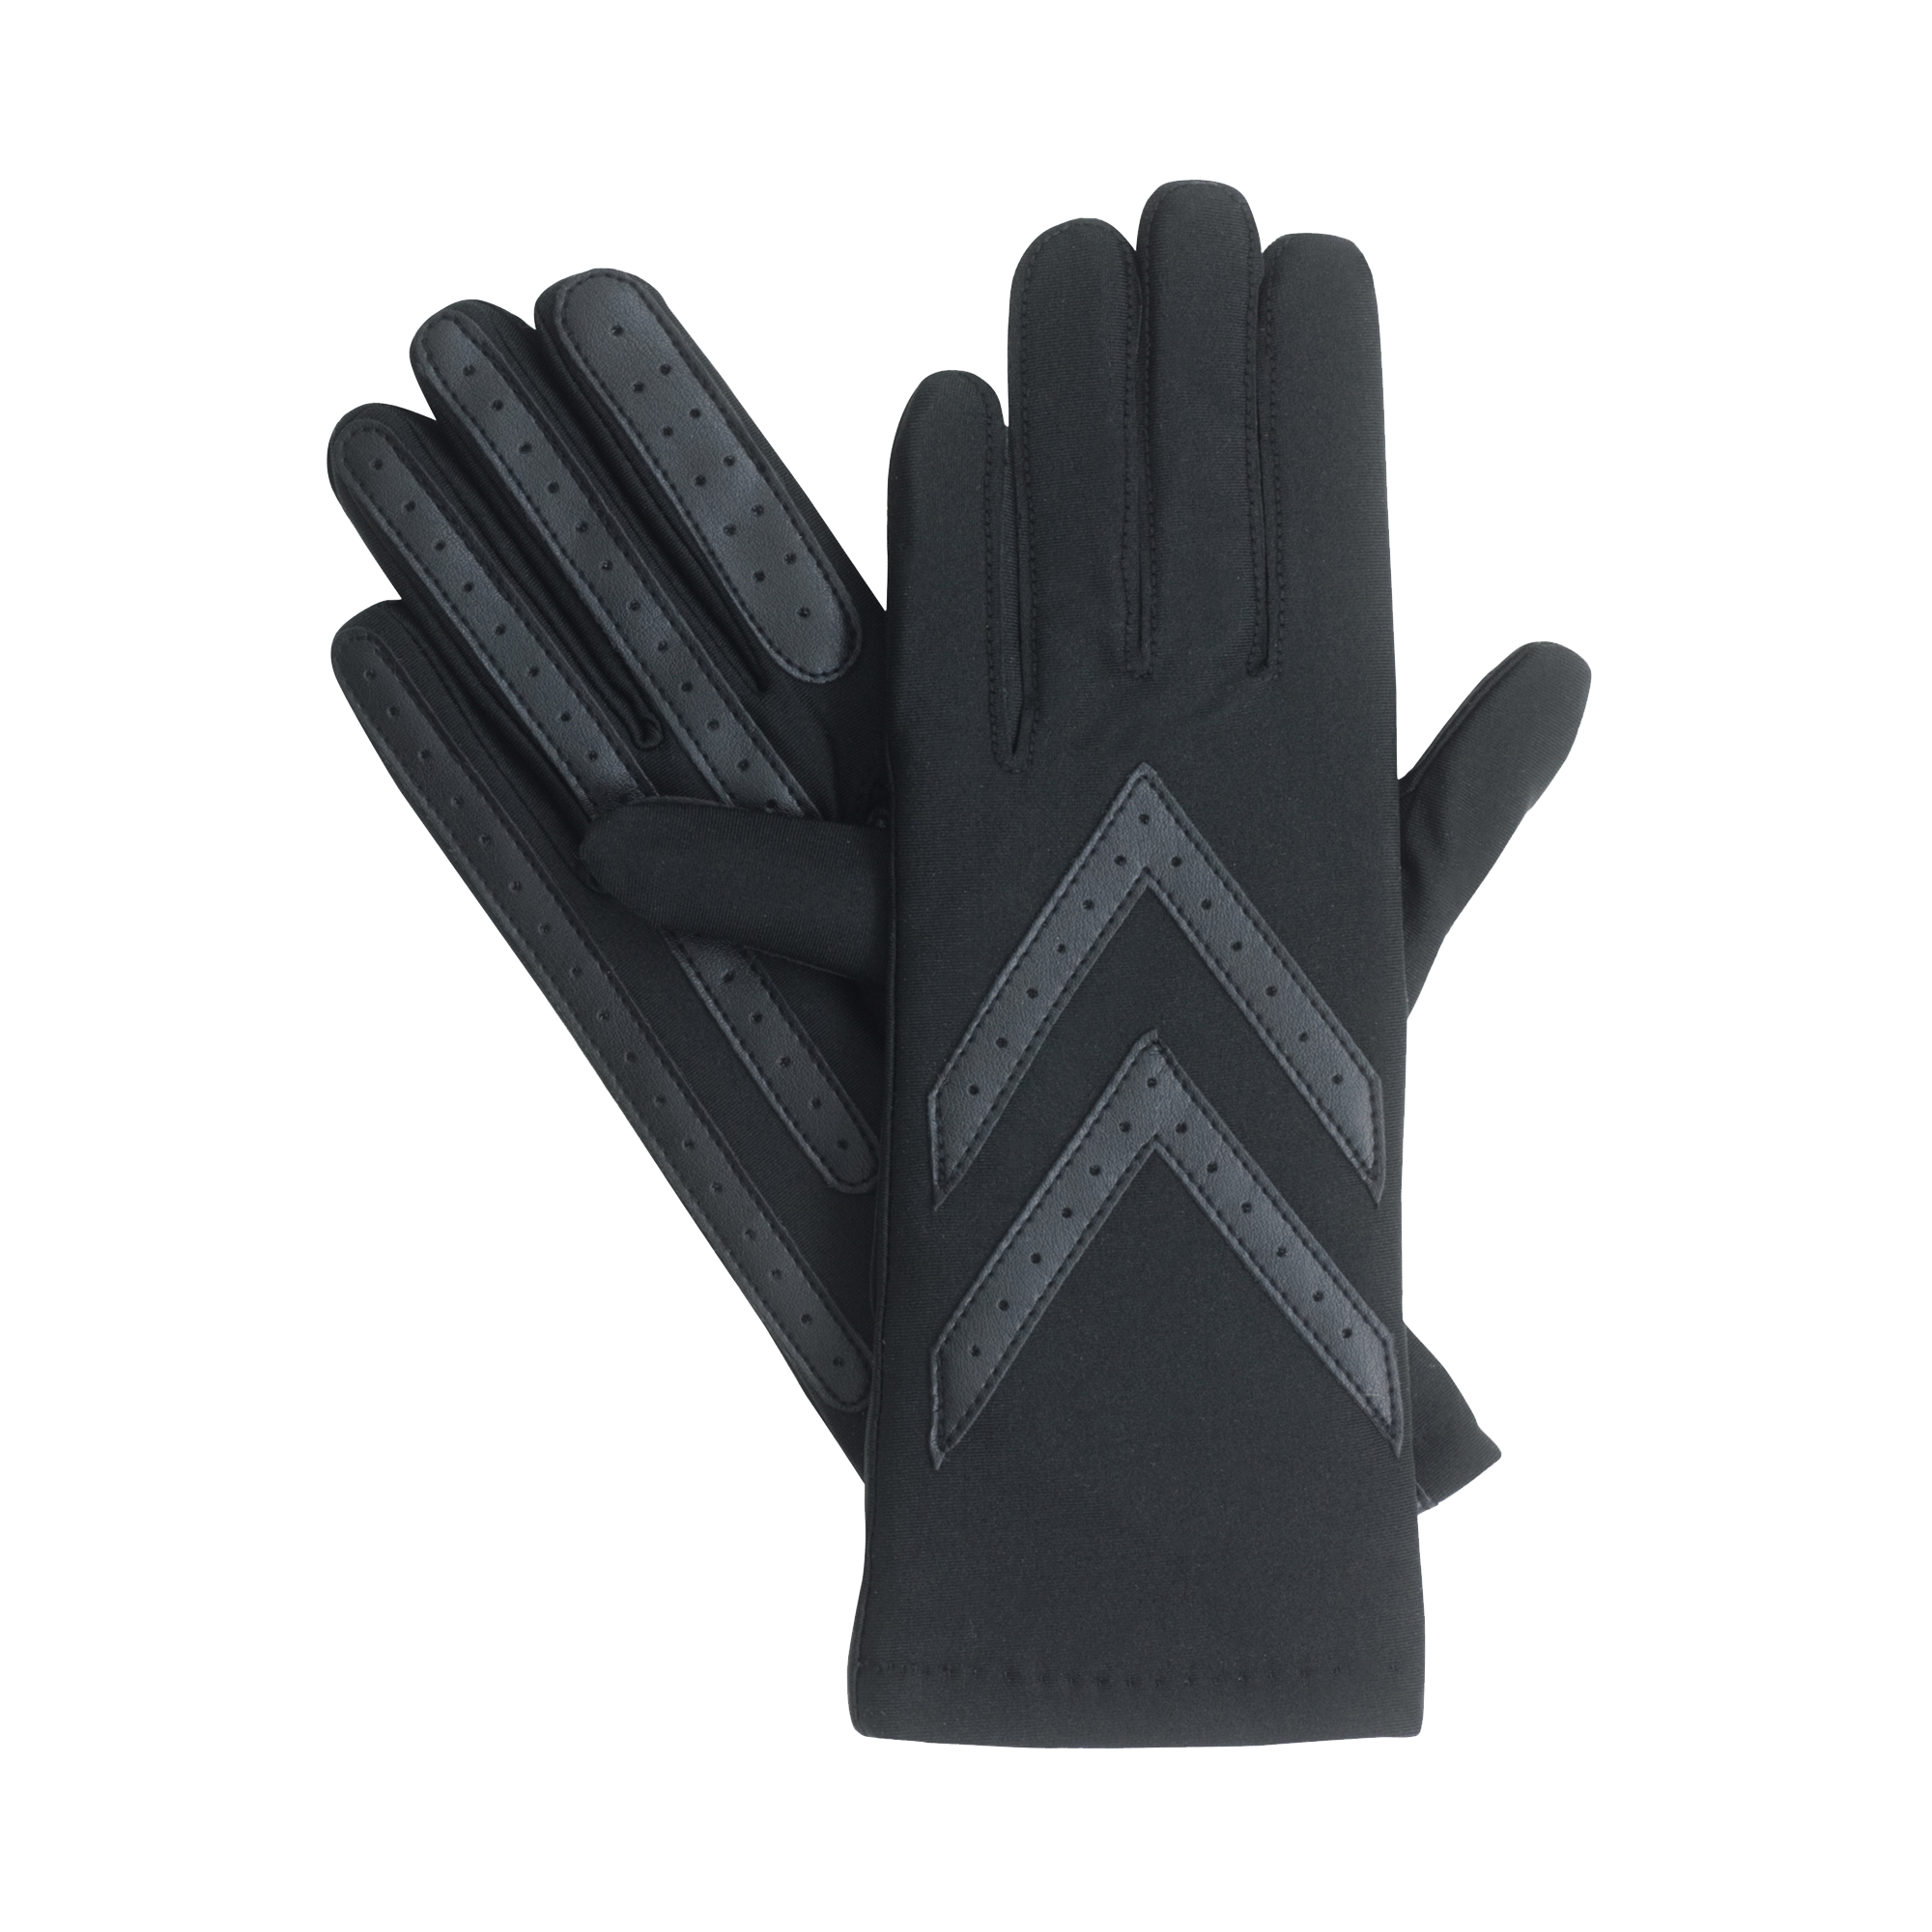 Isotoner Women's SmarTouch® Thinsulate® Lined Classic Gloves